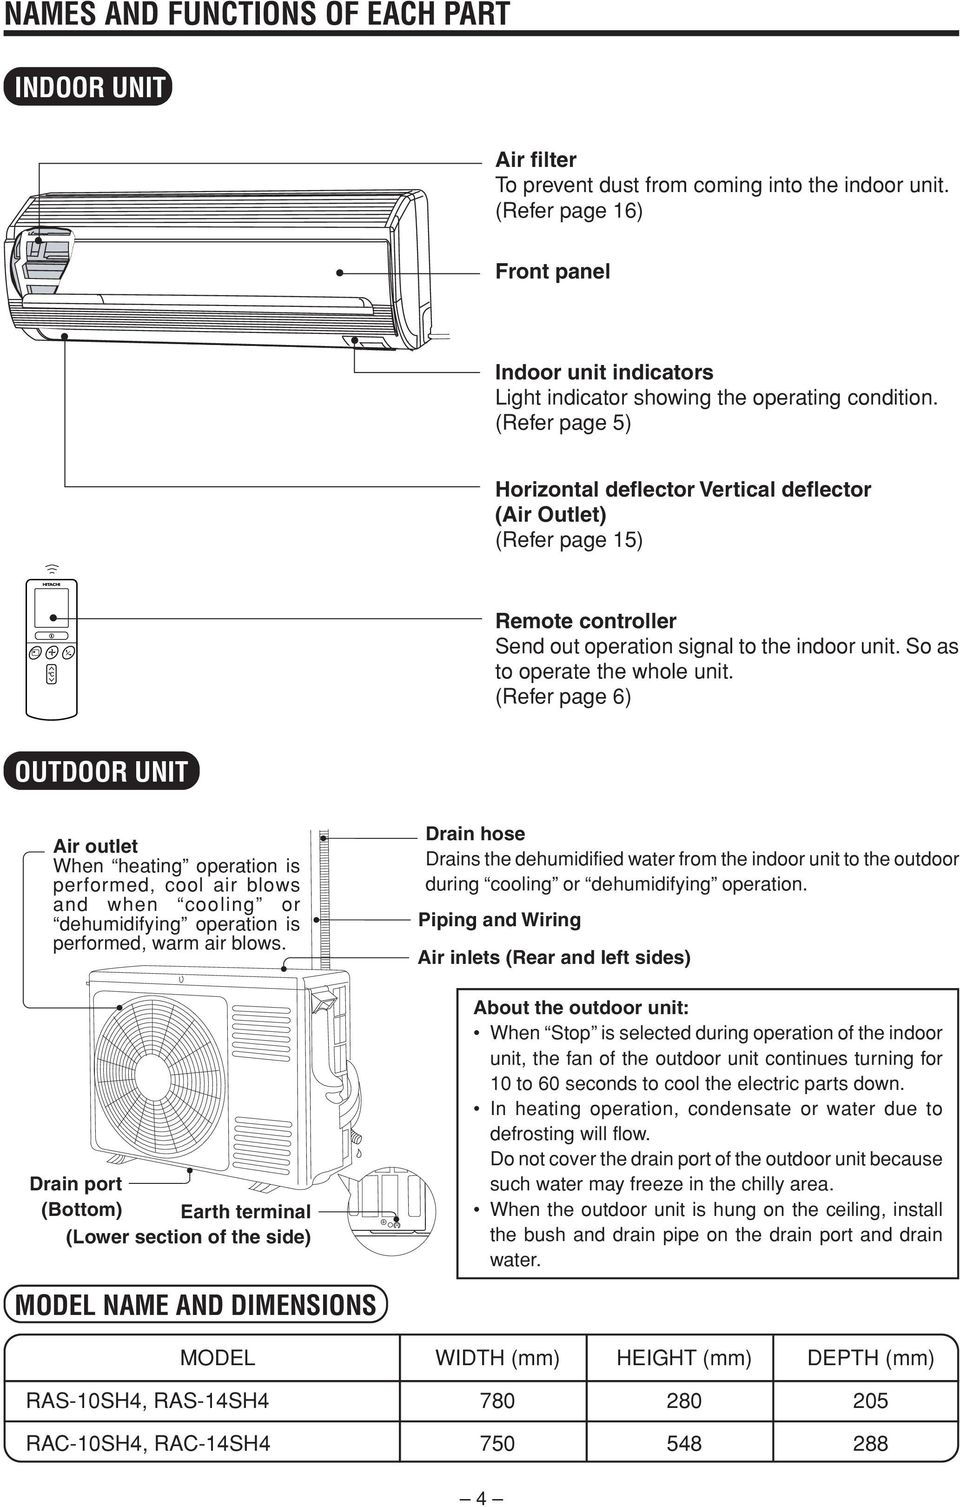 (Refer page 5) Horizontal deflector Vertical deflector (Air Outlet) (Refer page 5) Remote controller Send out operation signal to the indoor unit. So as to operate the whole unit.